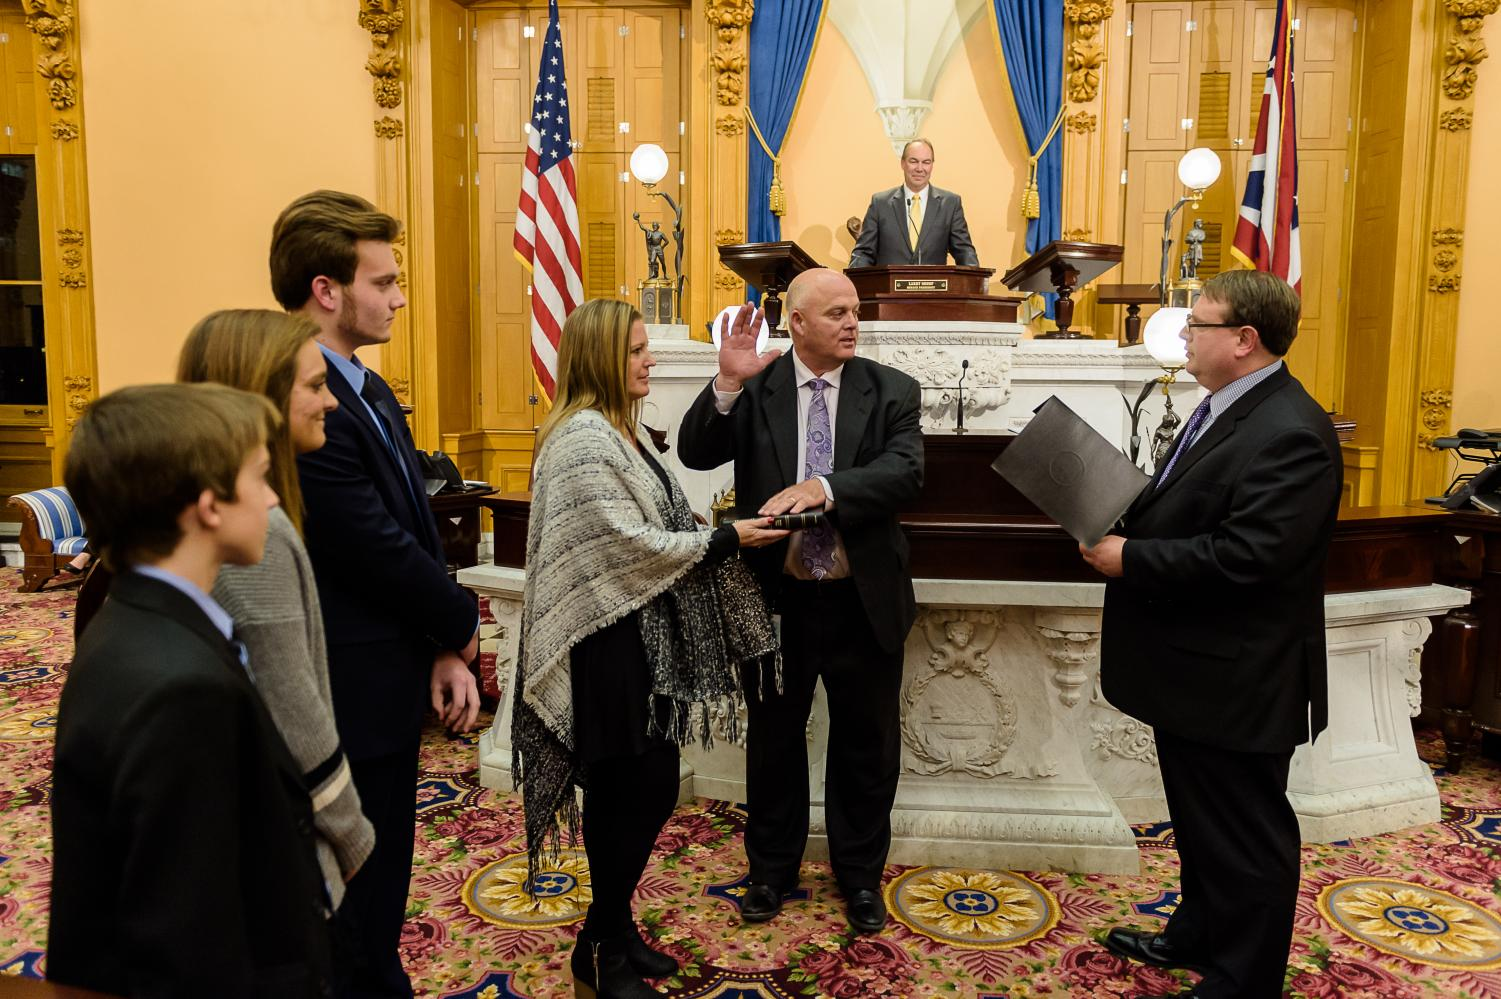 Brian Hill, joined by his family, is sworn into Ohio's 20th District Senate Seat.